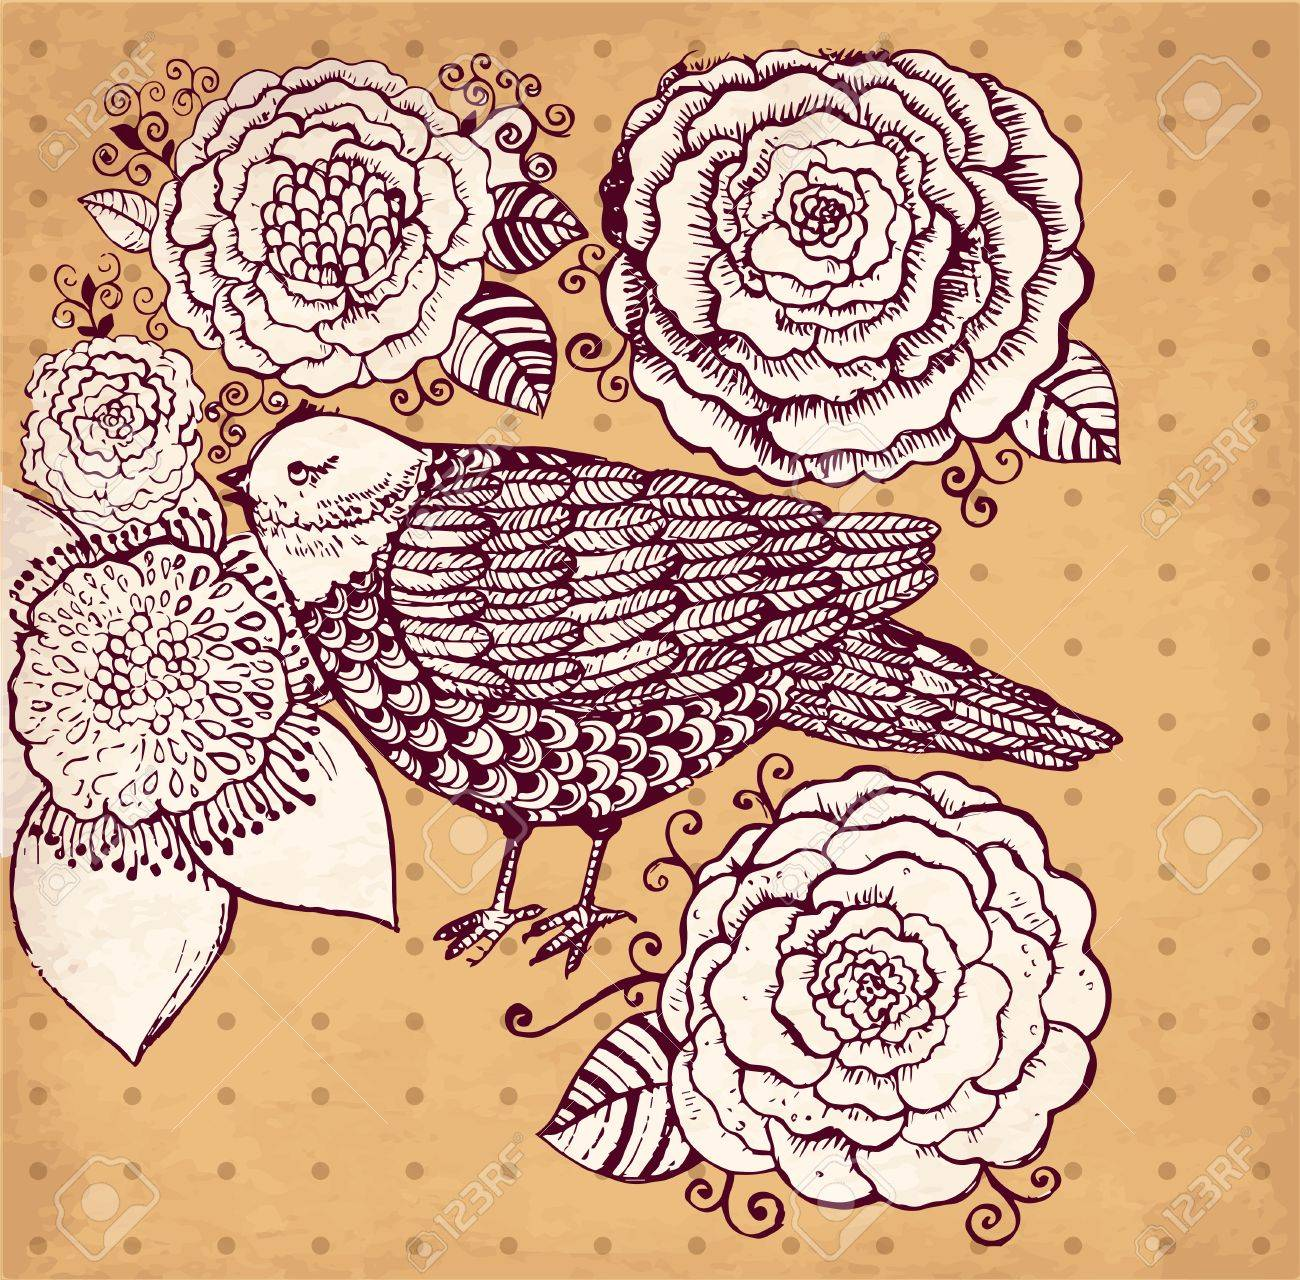 hand drawn vintage illustration with flowers and bird Stock Vector - 17922132